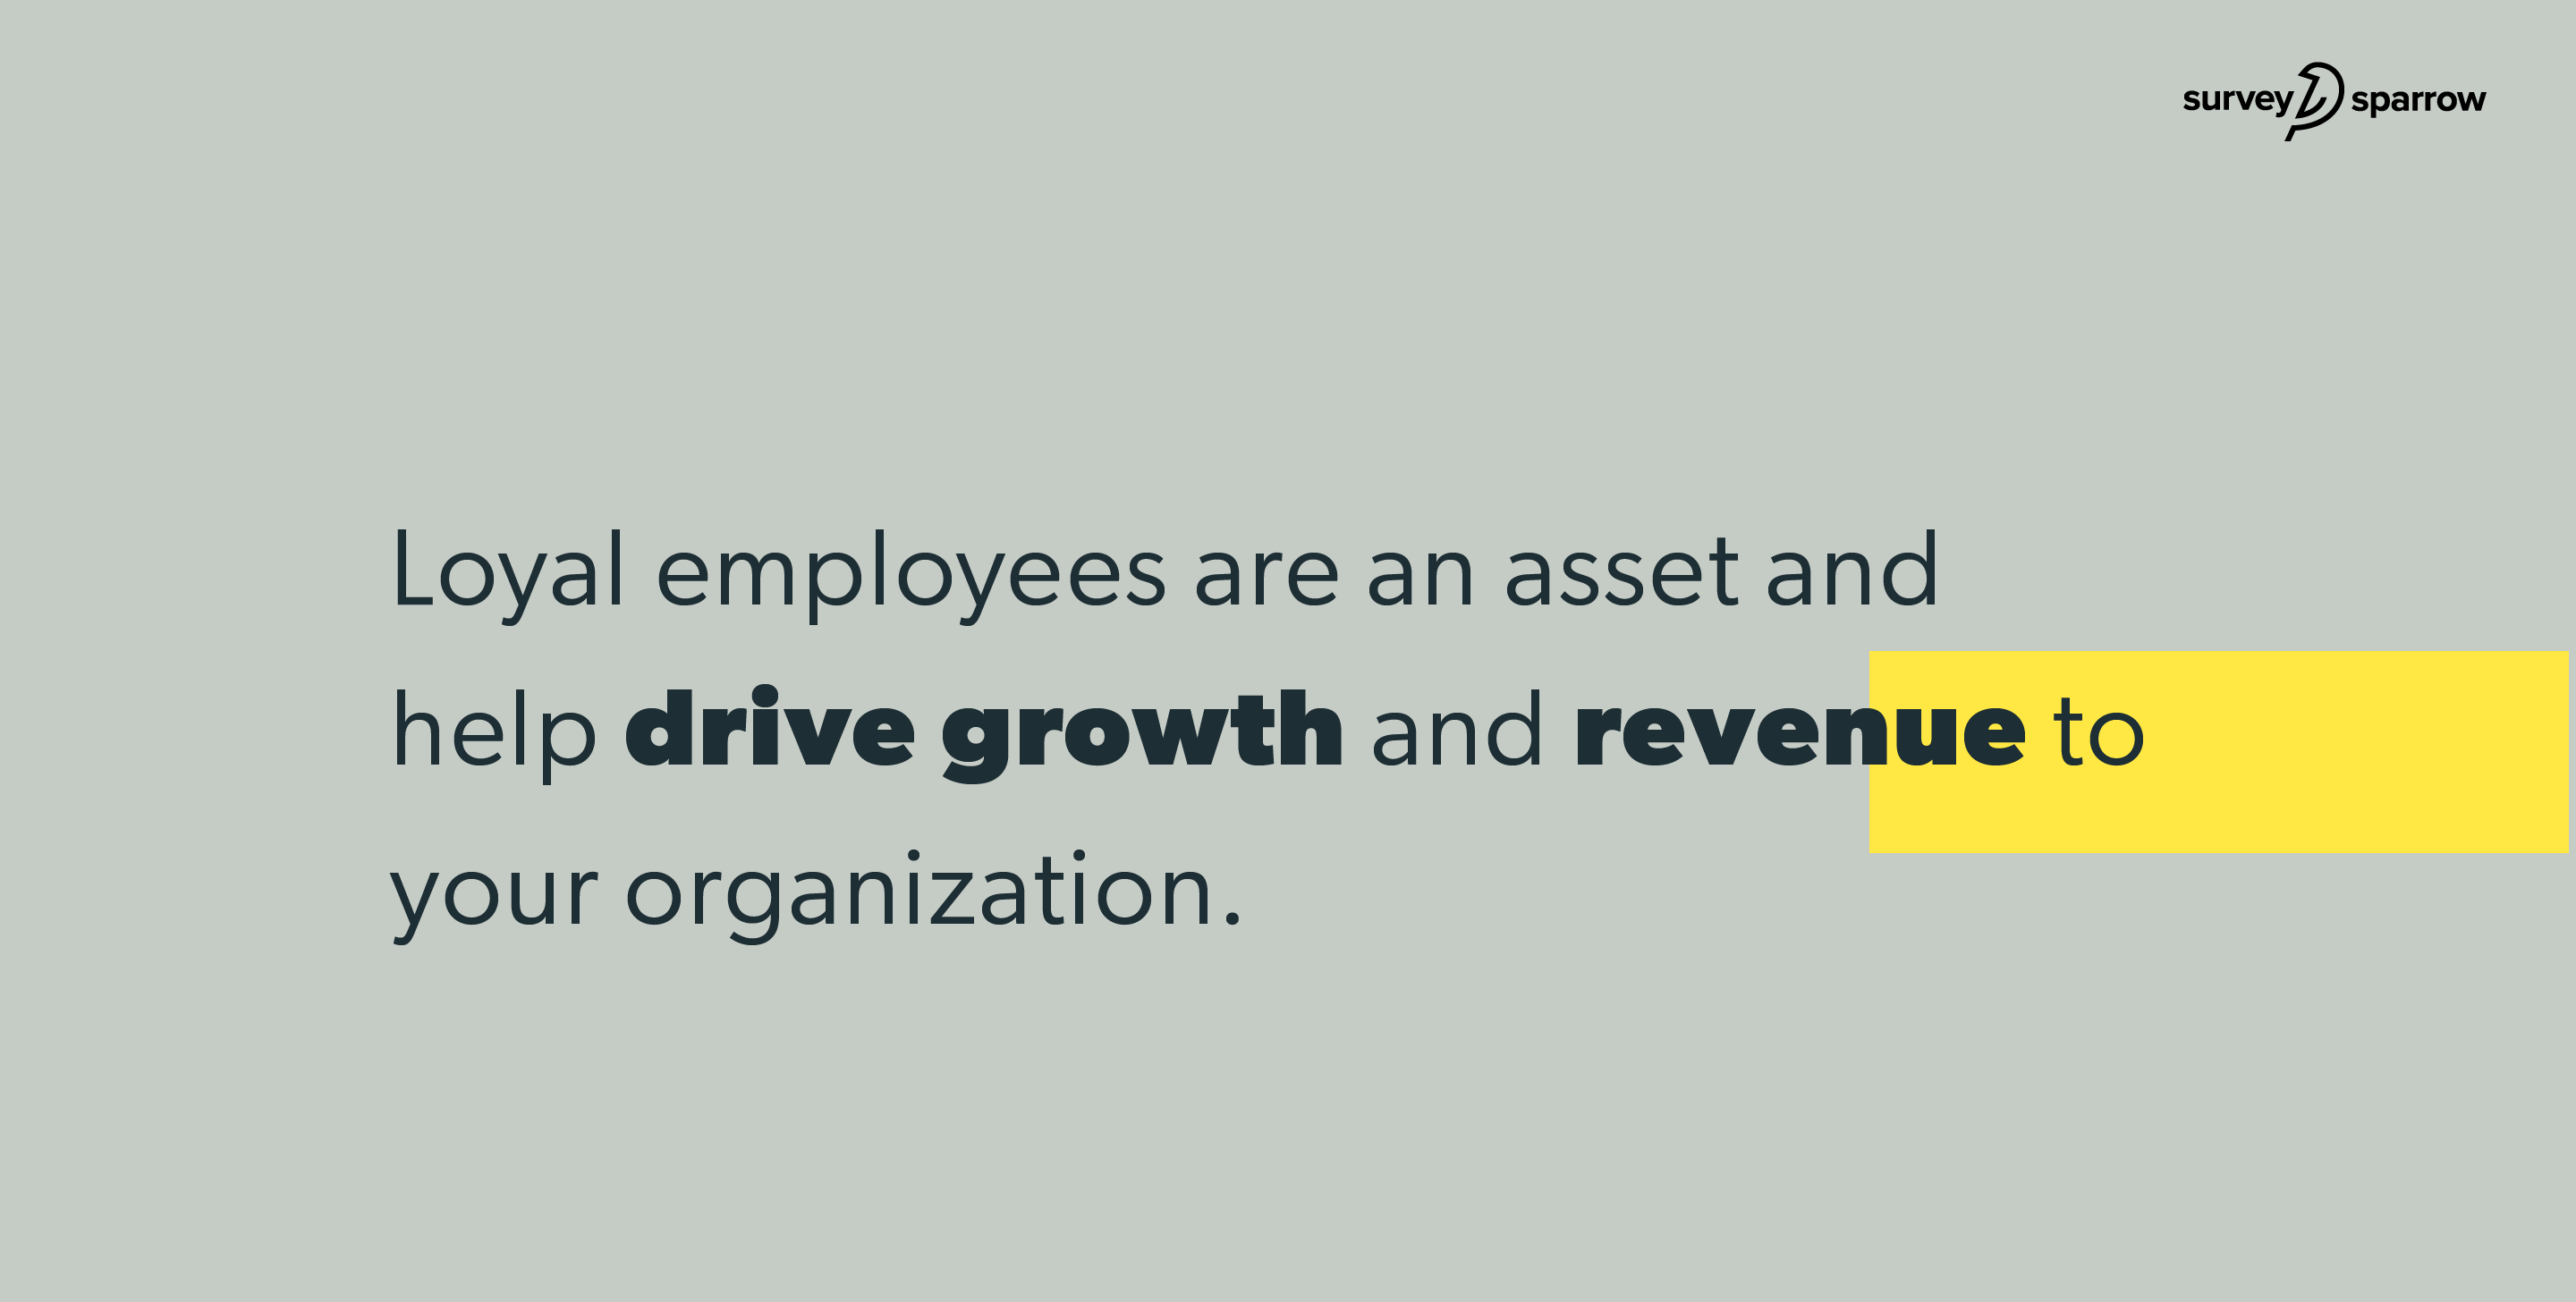 Drive growth to your organization by improving employee loyalty.